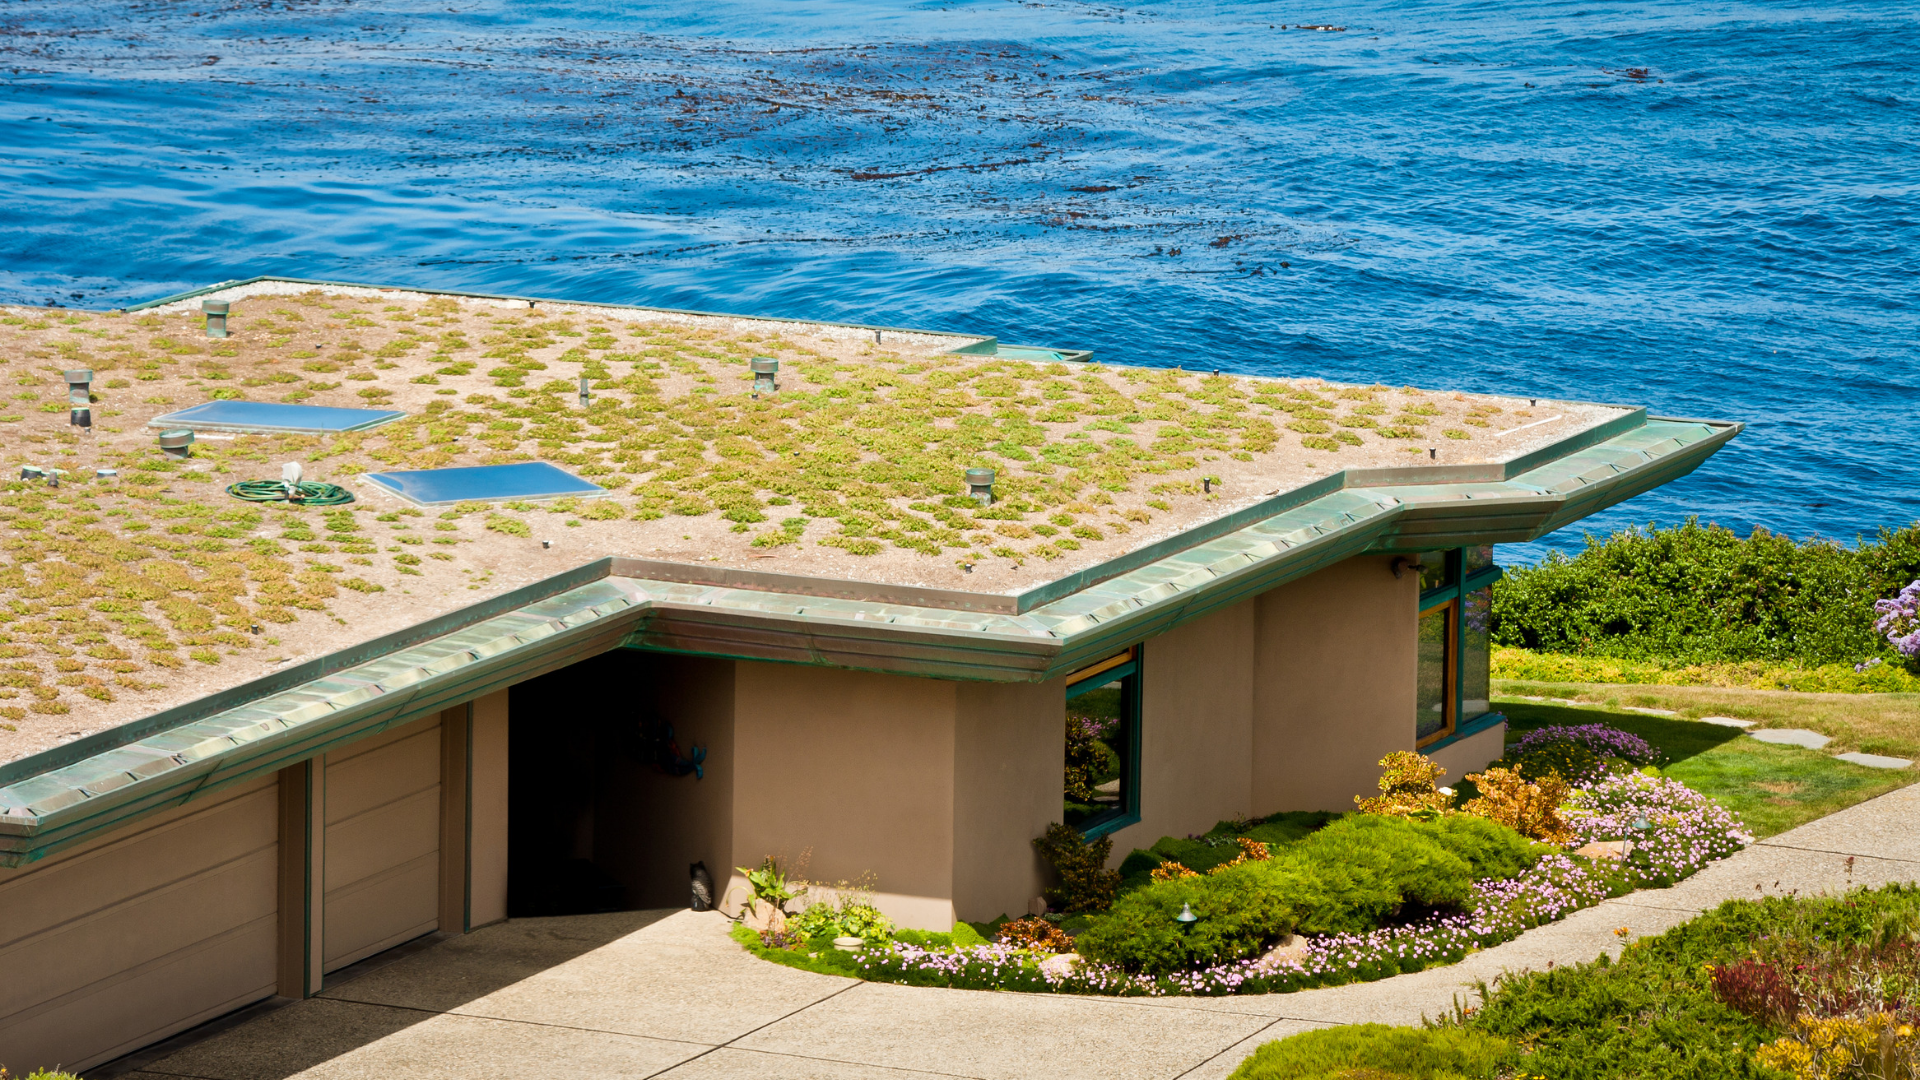 Do You Need Custom Media for a Green Roof?